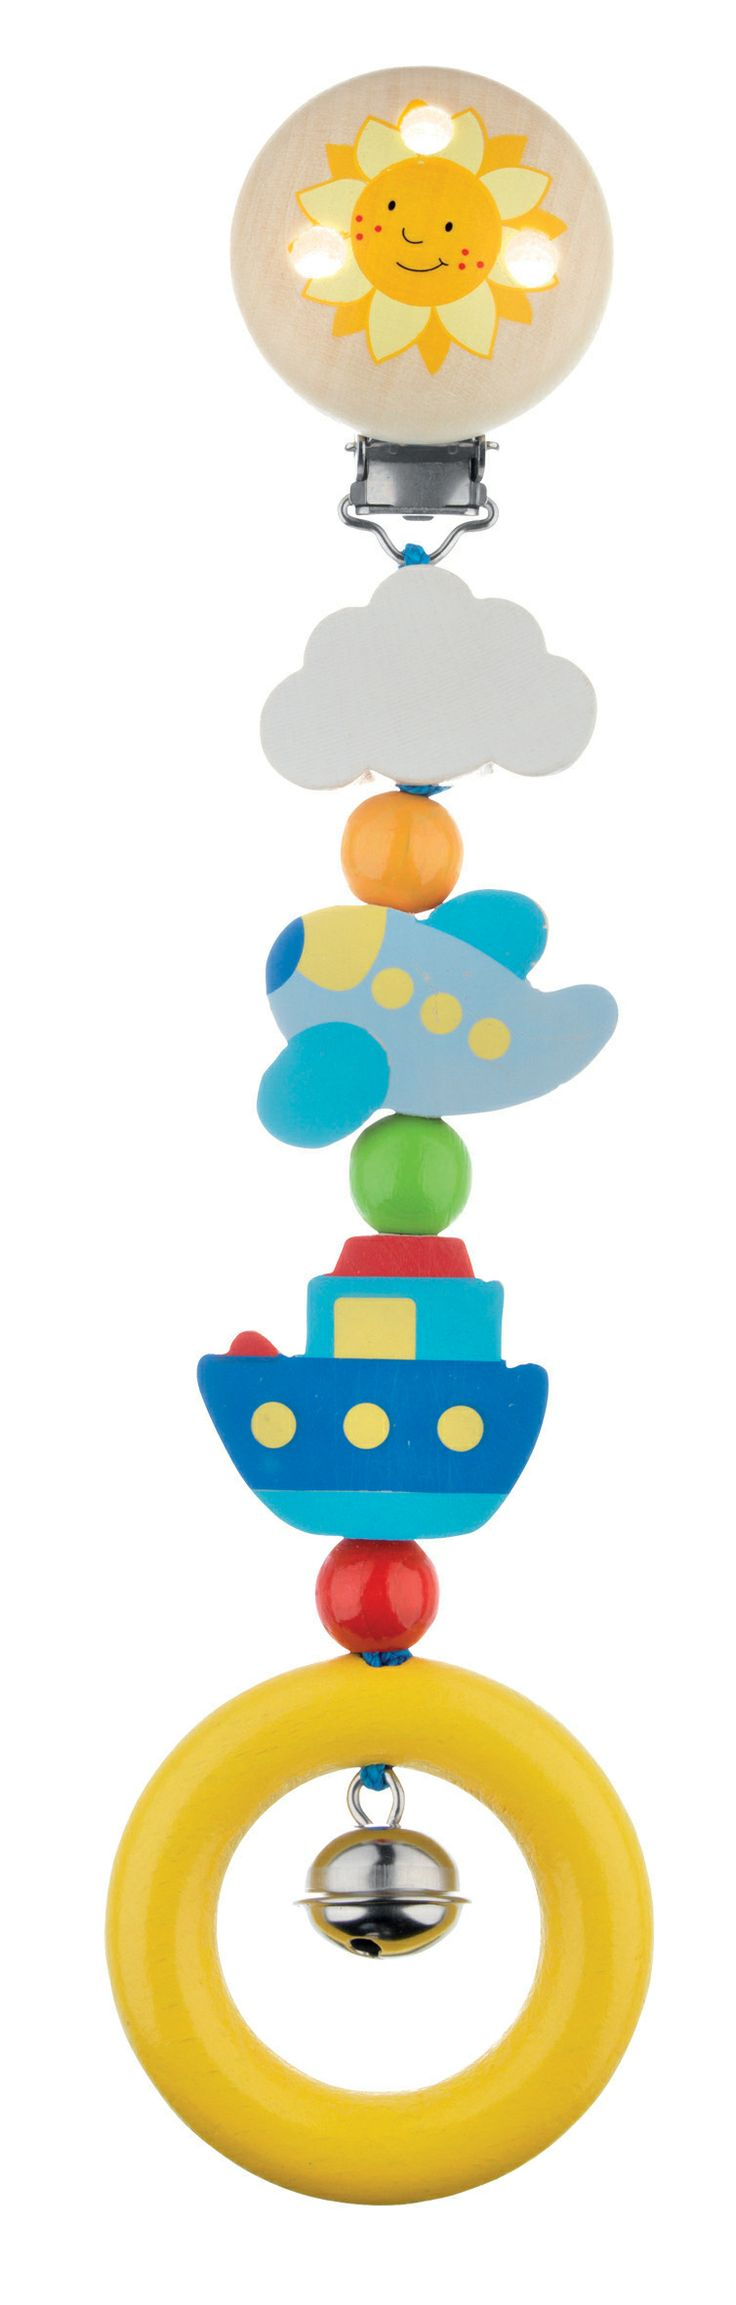 Baby will adore this bright and cheerful clip-on toy! These little characters will clip on to clothing, prams and cots to ensure a friendly face is always close by to look at and touch, whilst the tinkling bell will soothe and cheer.  These wooden toys encourage both the motor coordination and the mental development of the baby.